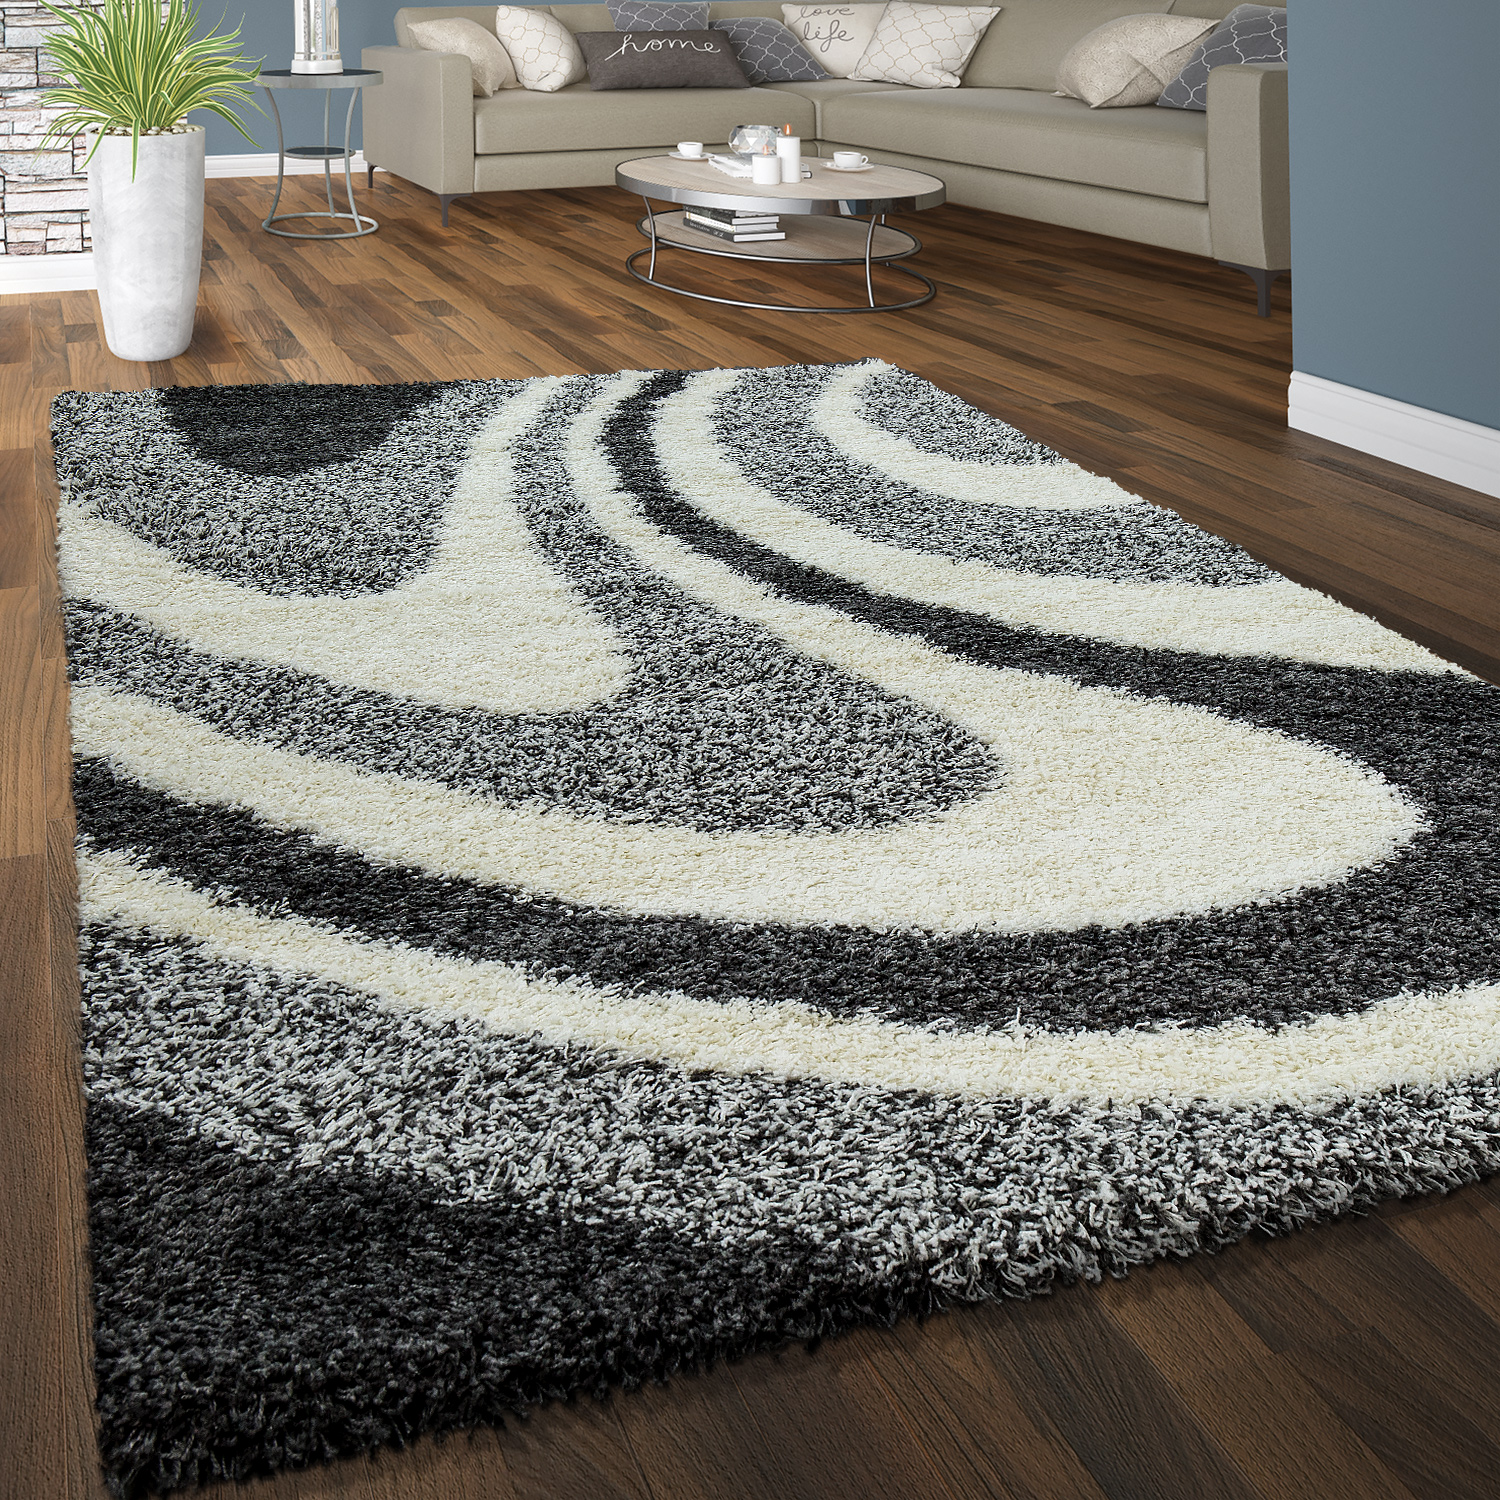 tapis shaggy poils hauts confortable doux poils longs ondul gris blanc anthracite tapis tapis. Black Bedroom Furniture Sets. Home Design Ideas